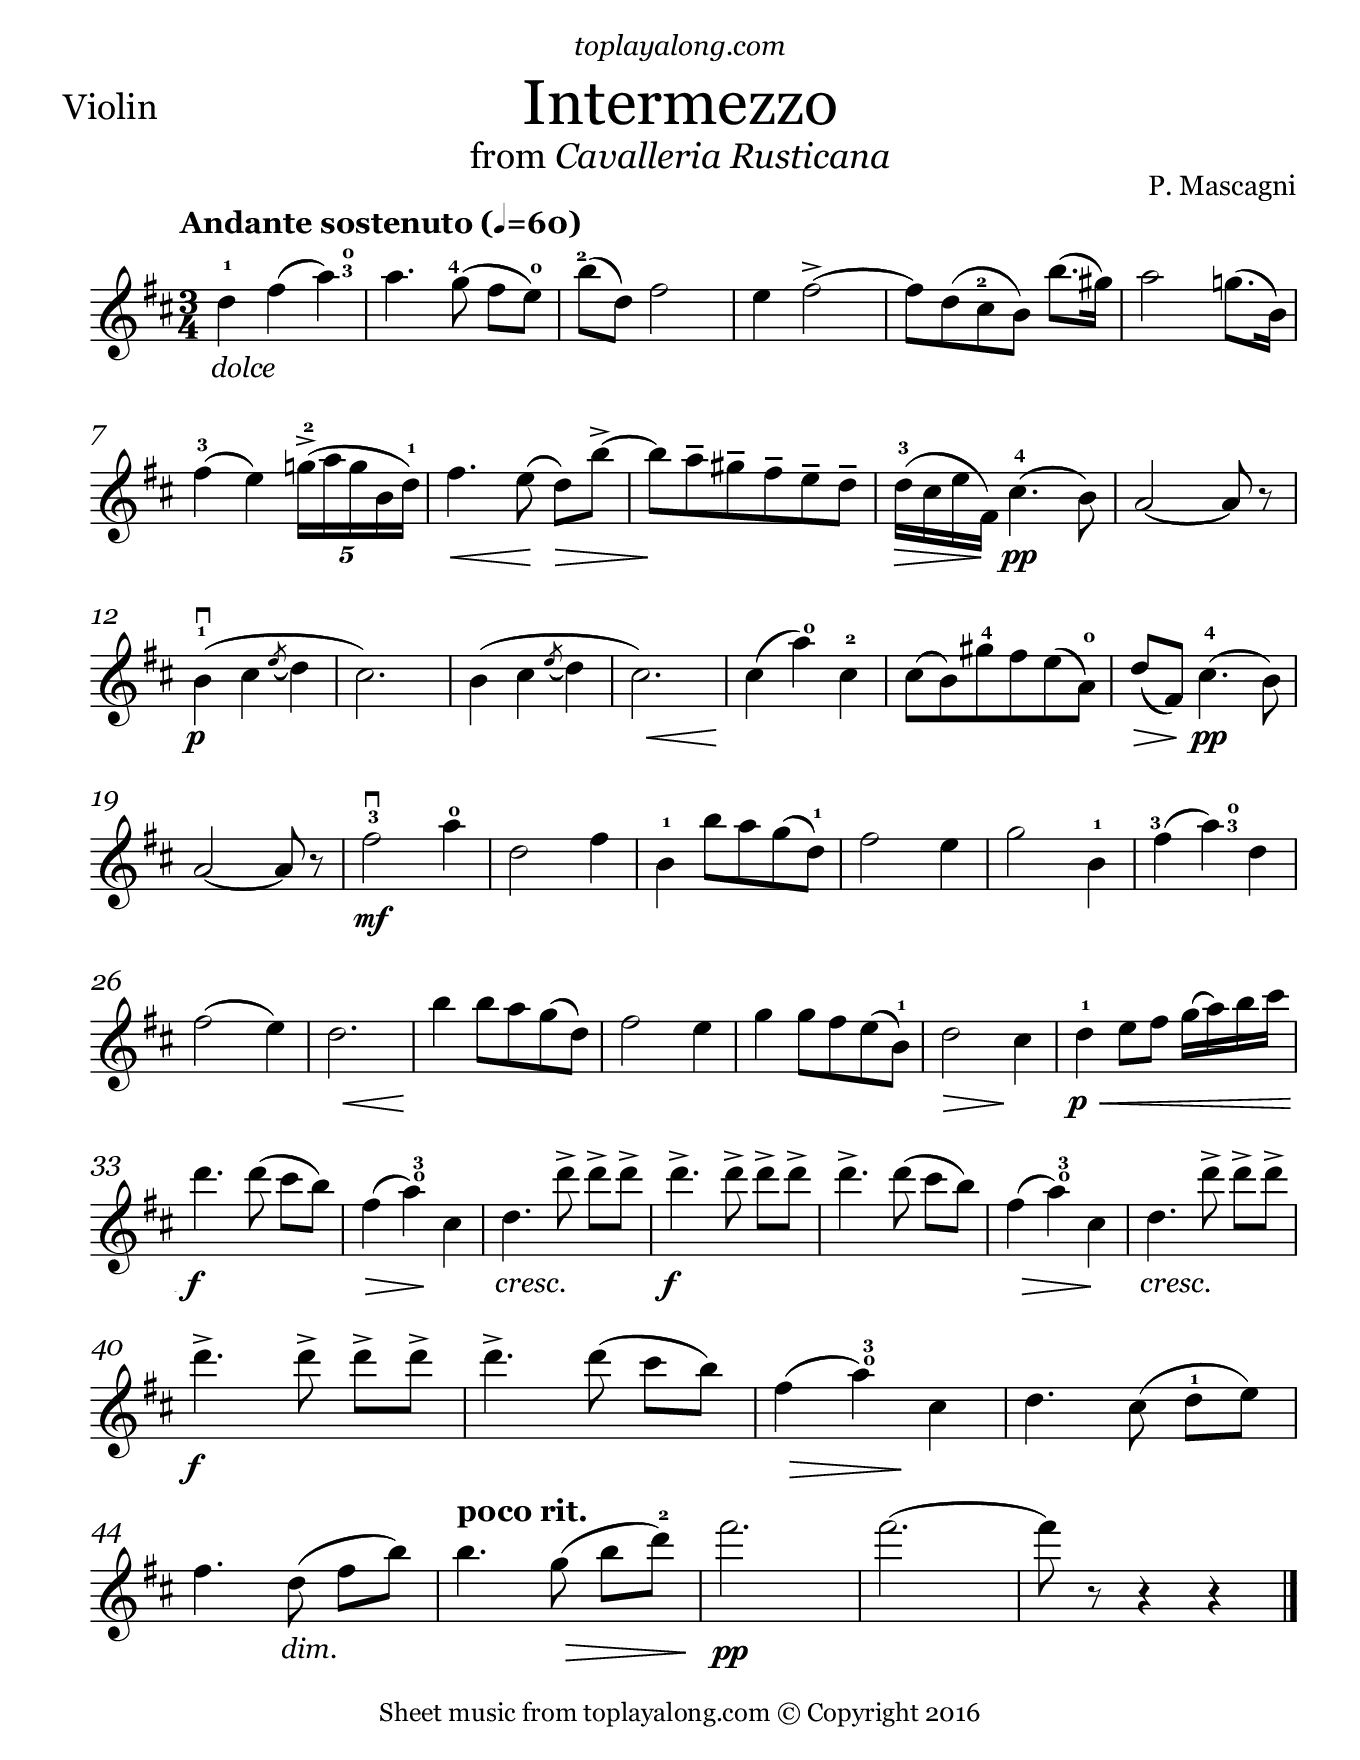 Intermezzo from Cavalleria Rusticana by Mascagni. Sheet music for Violin, page 1.